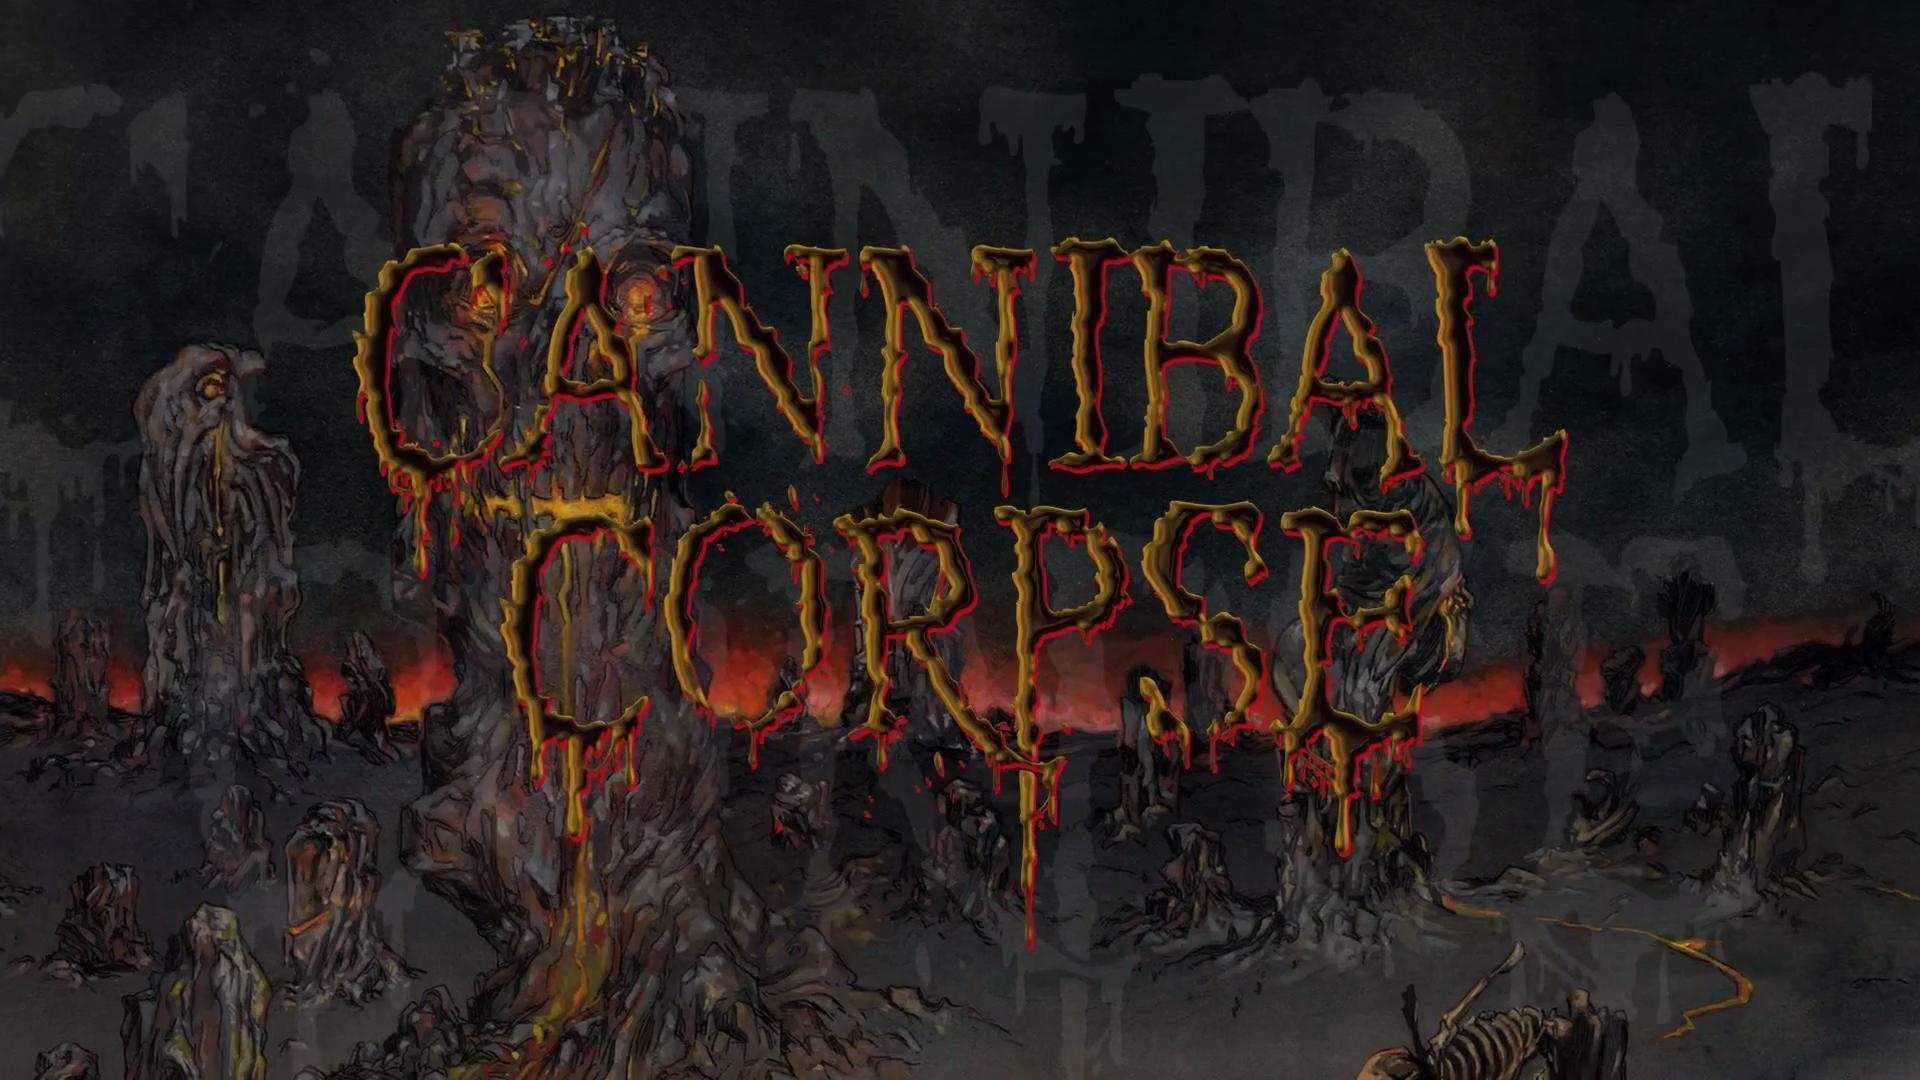 awesome metal band wallpapers